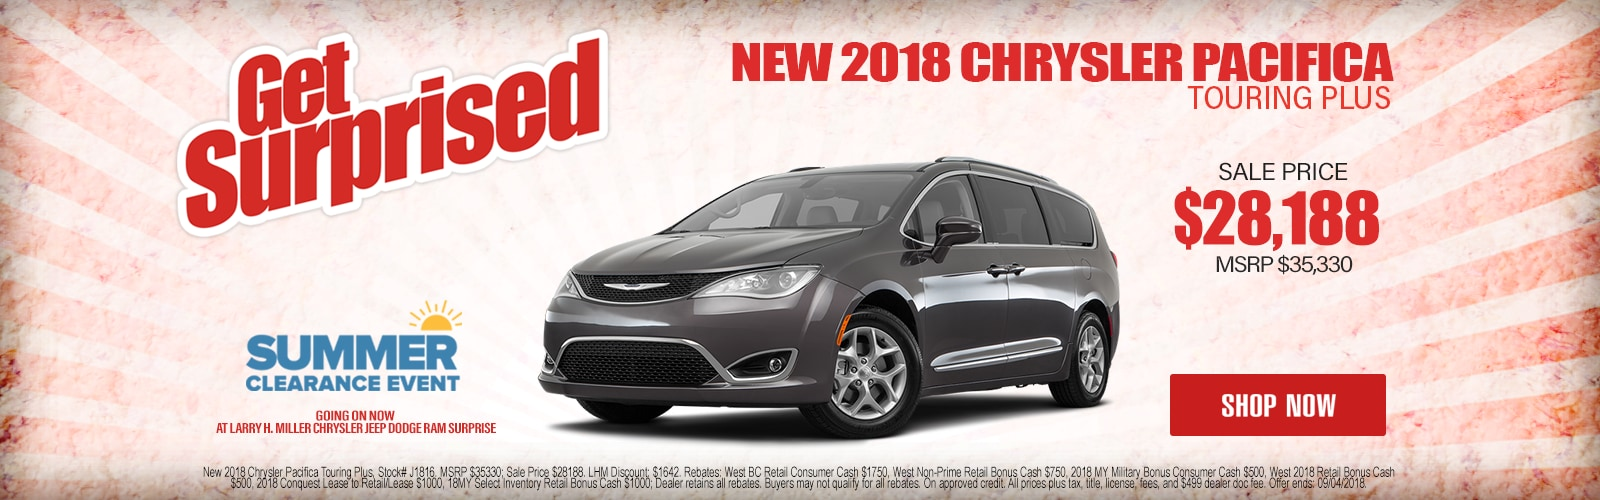 New 2018 Chrysler Pacifica Touring Plus Starting As Low As $28,188 at Larry H. Miller Chrysler Jeep Dodge Ram Surprise